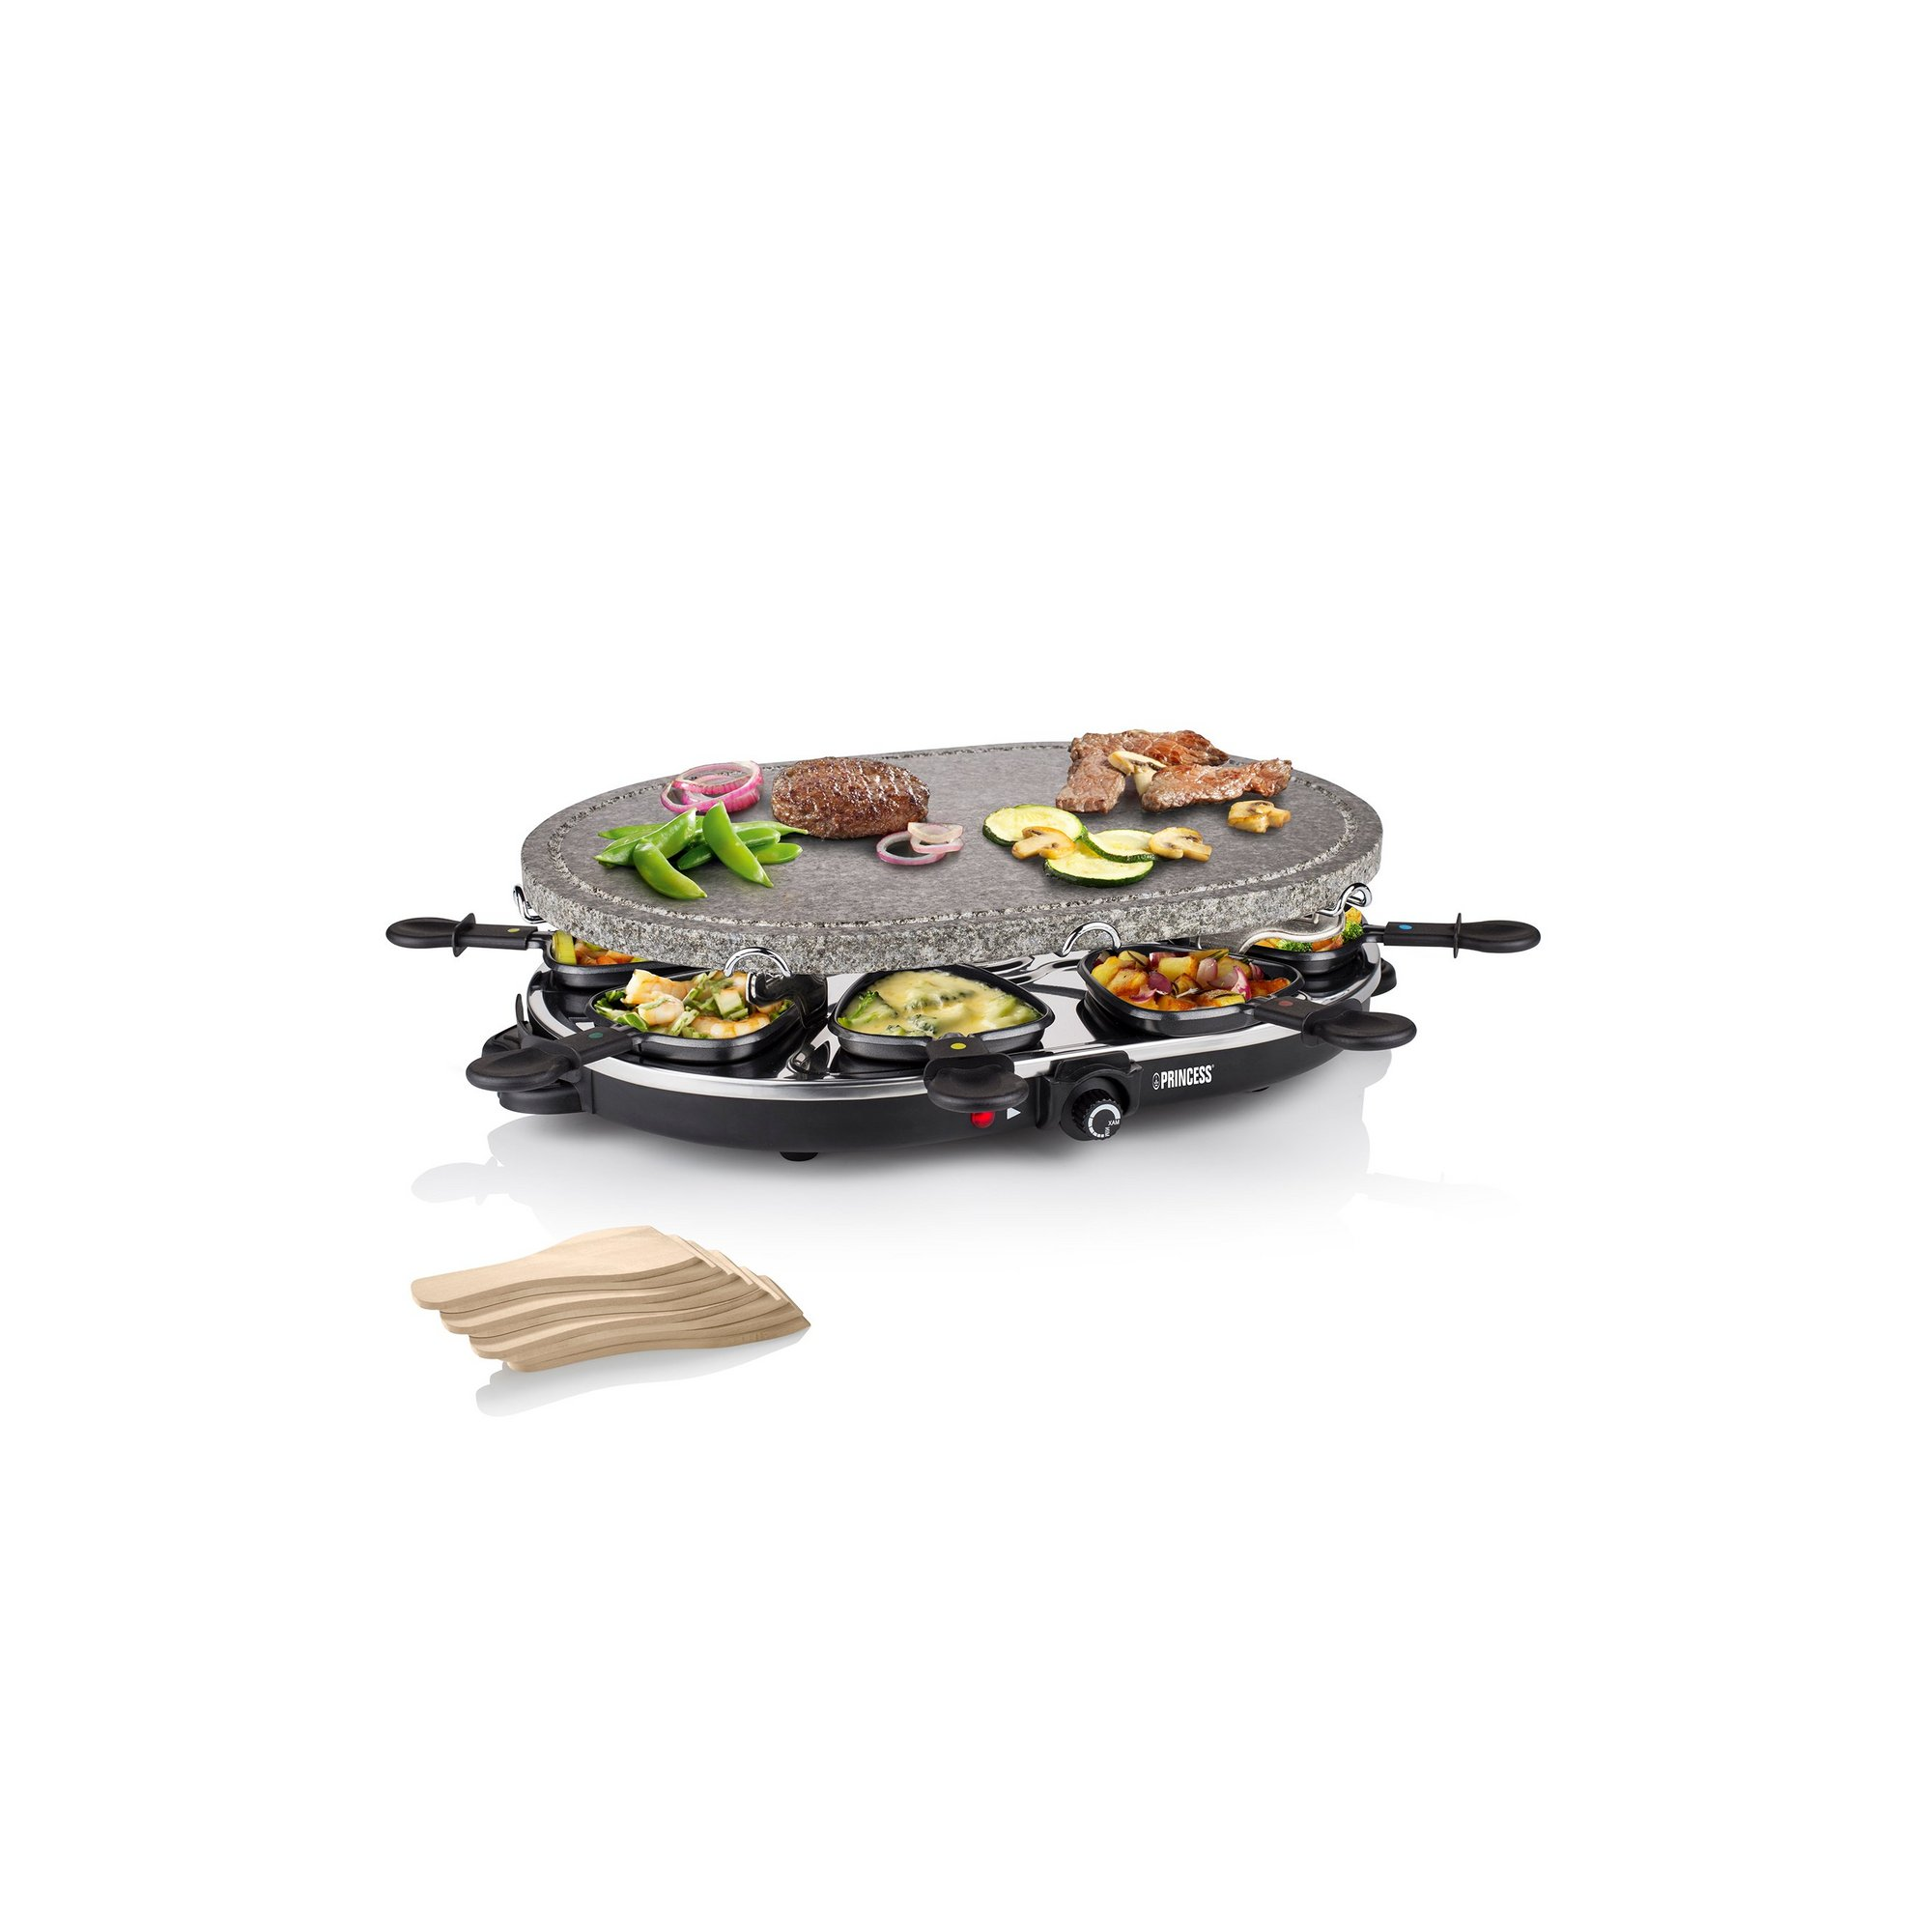 Image of Princess Raclette 8 Oval Stone Grill Party